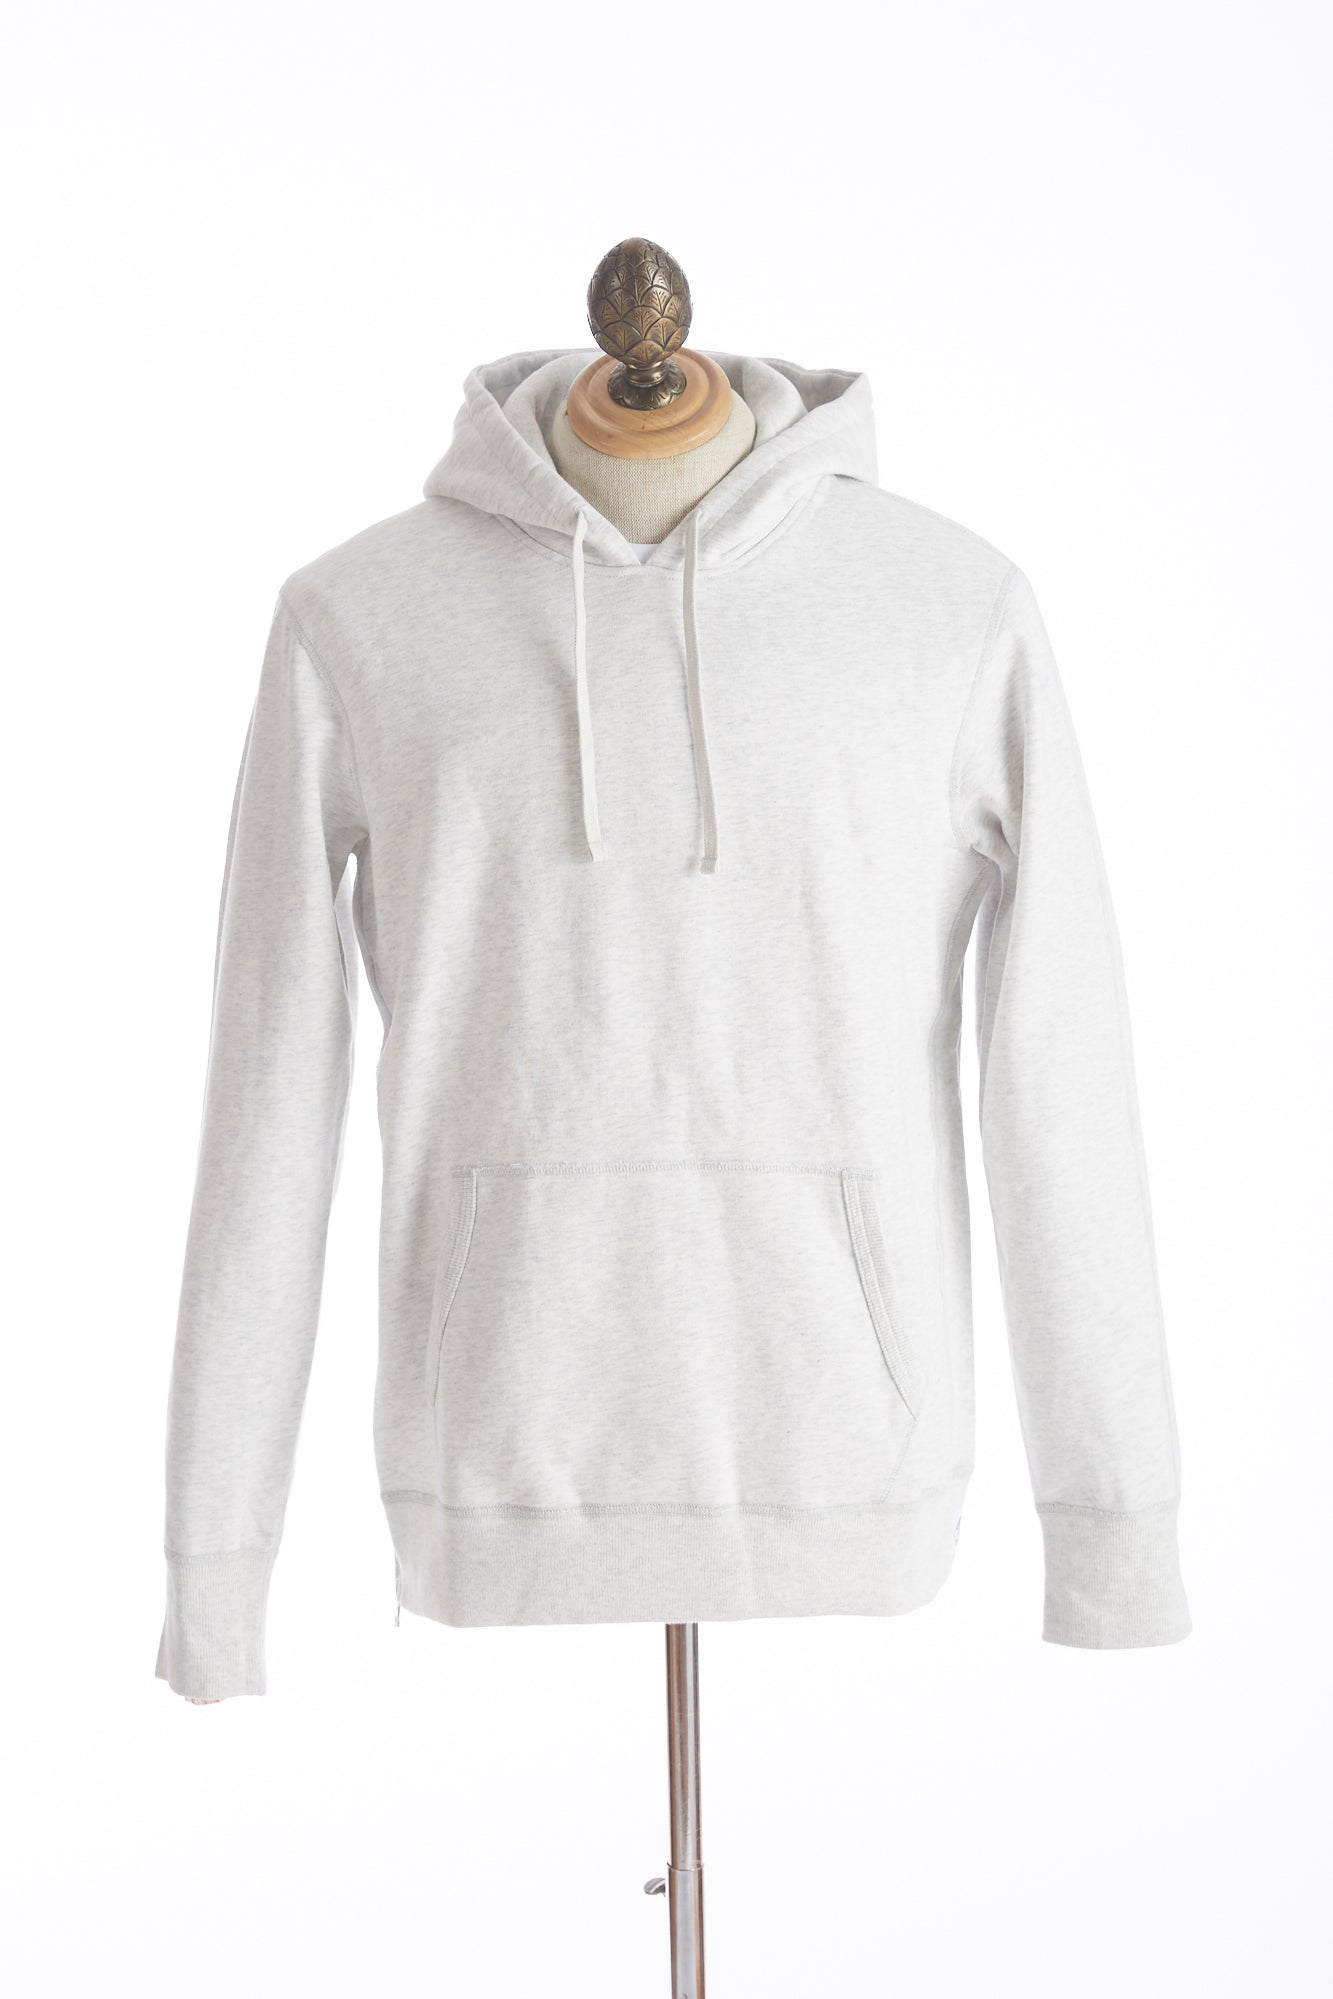 Reigning Champ Heather Ash Side Zip Pullover Hoodie